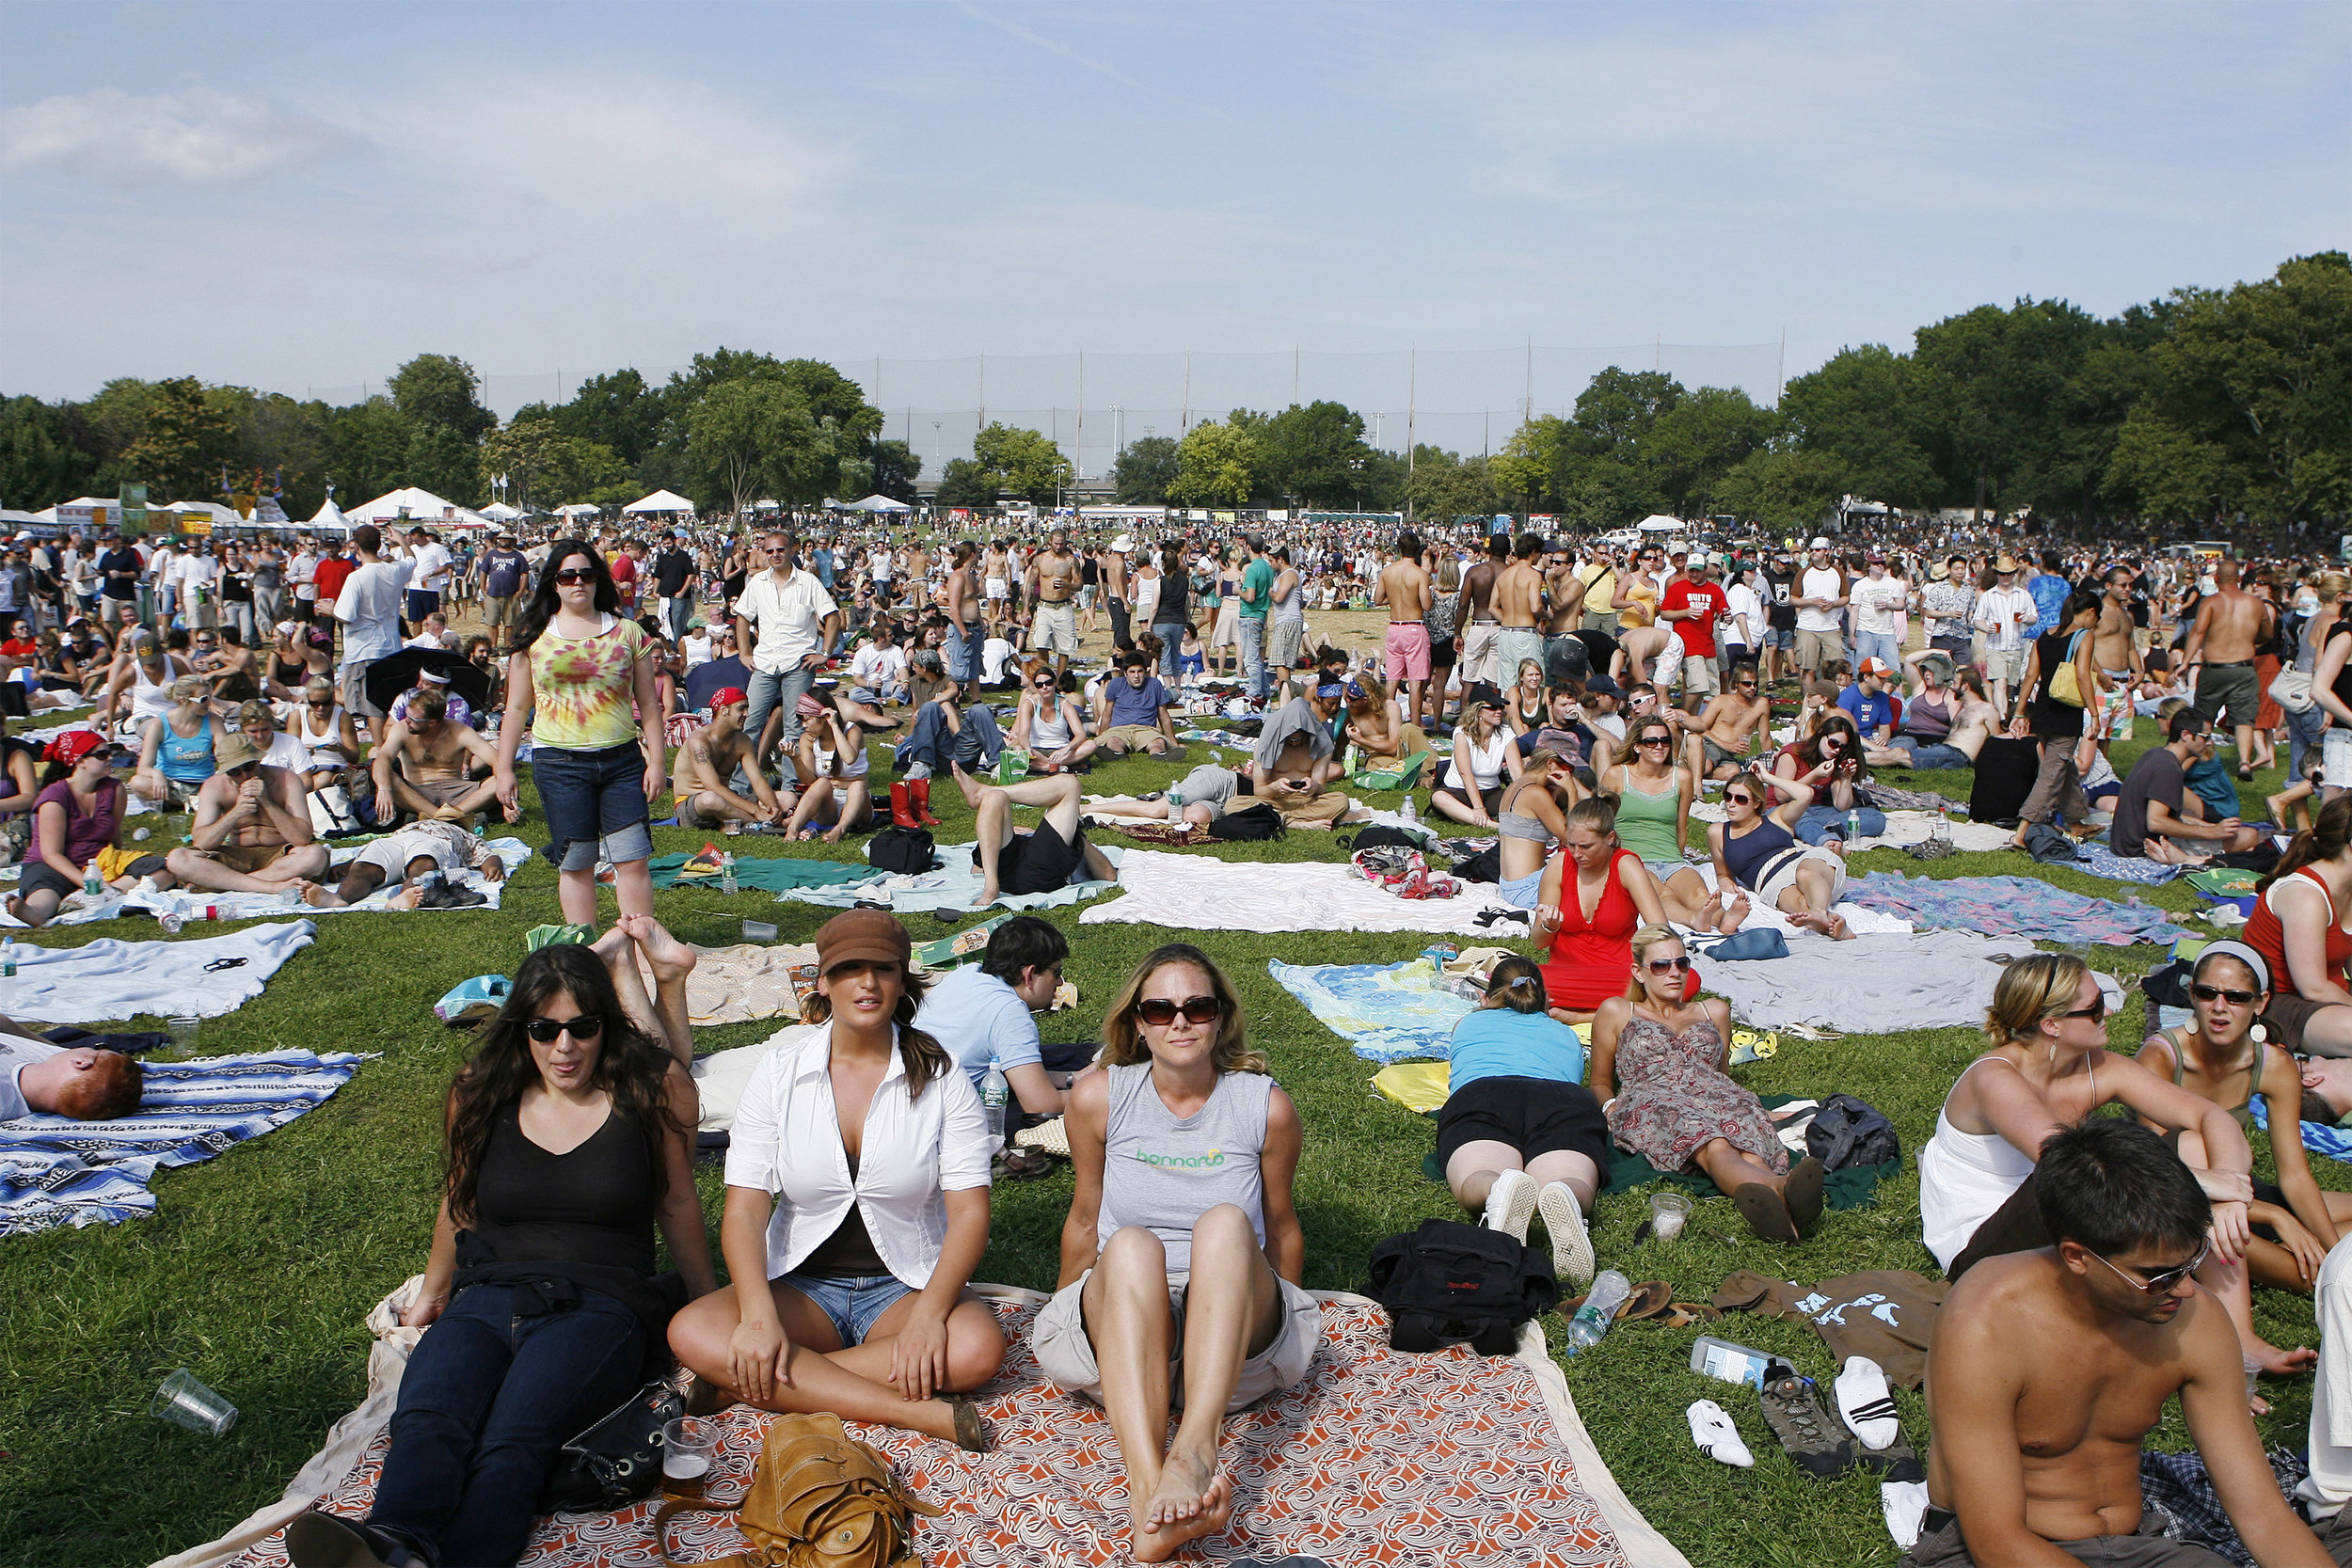 audience-members-sit-on-the-grass-on-randalls-island-during-the-2007-farm-aid-concert-in-new-york-september-9-2007.jpg